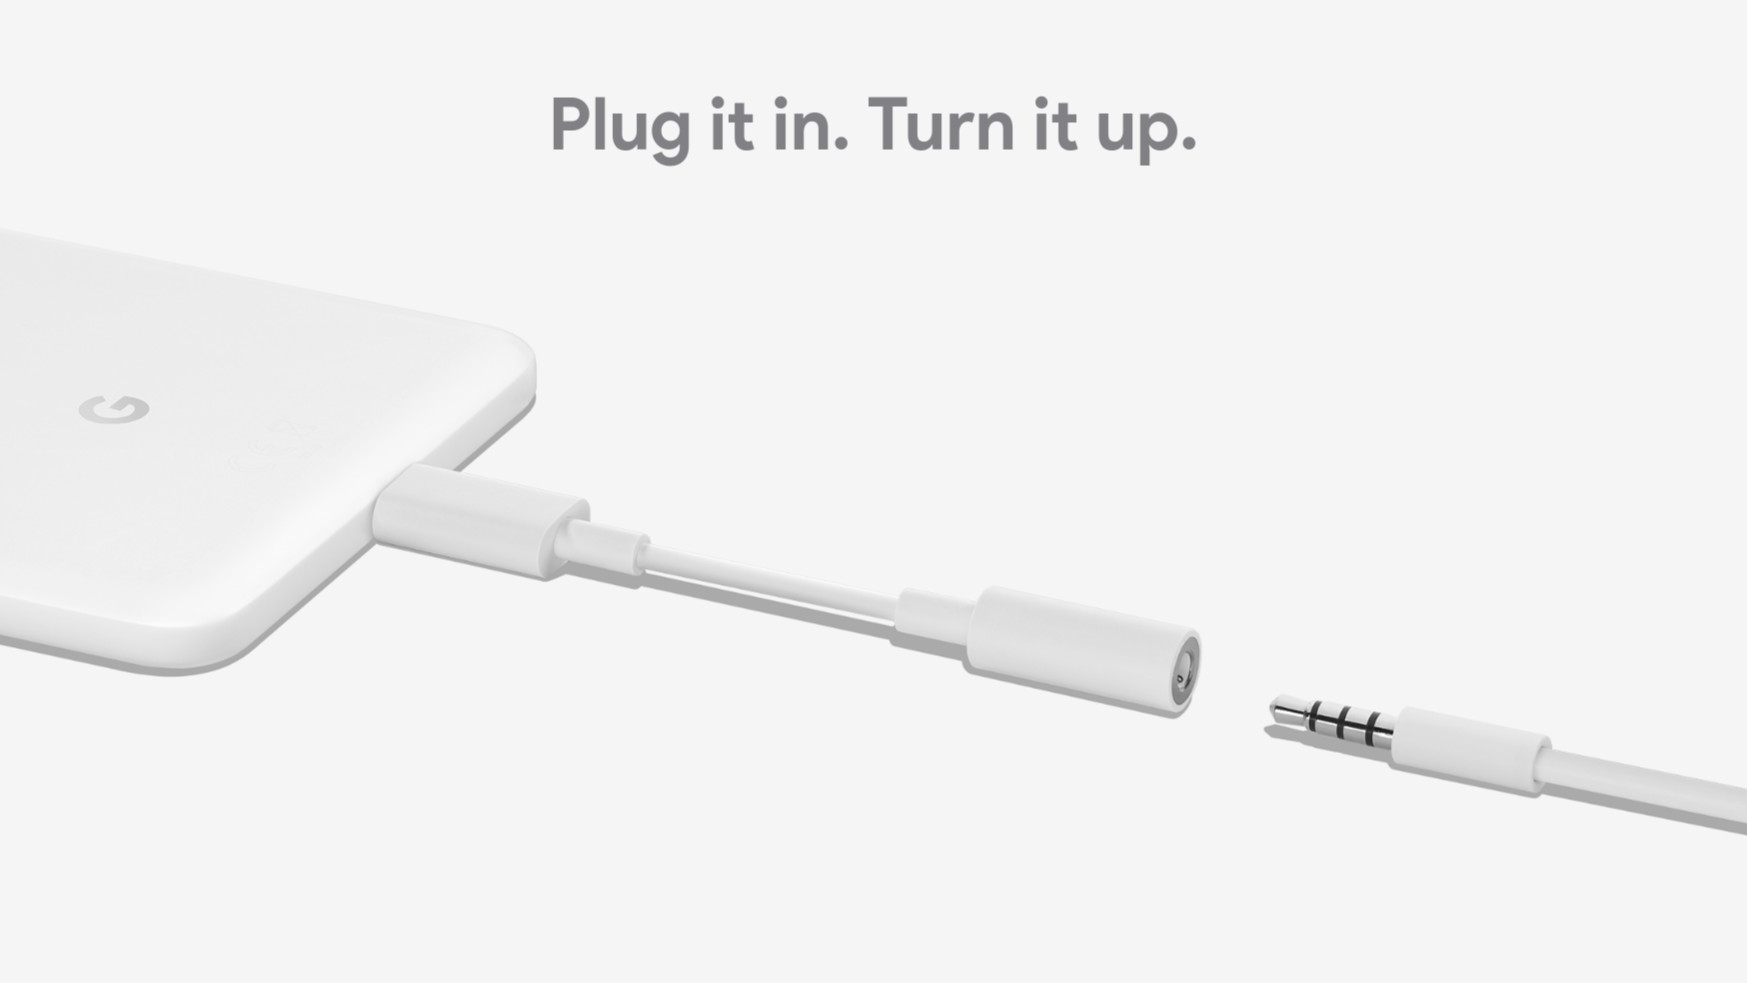 Google Releases Improved USB-C Headphone Adapter, Raises Price